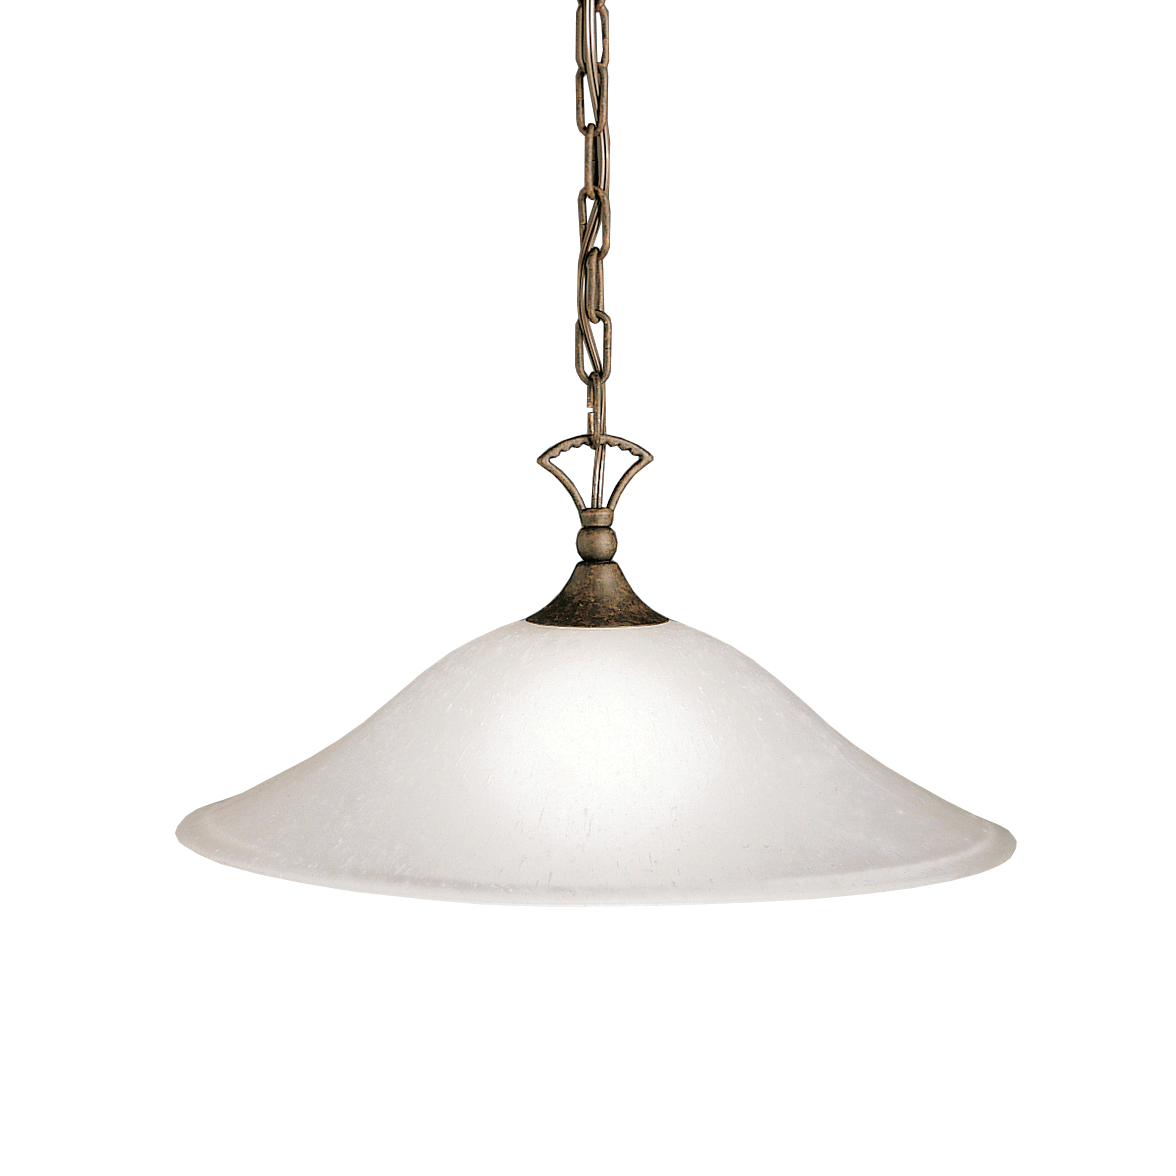 Kichler Hastings Pendant Light with Etched Seeded Glass Shade - Tannery Bronze (2702TZ)